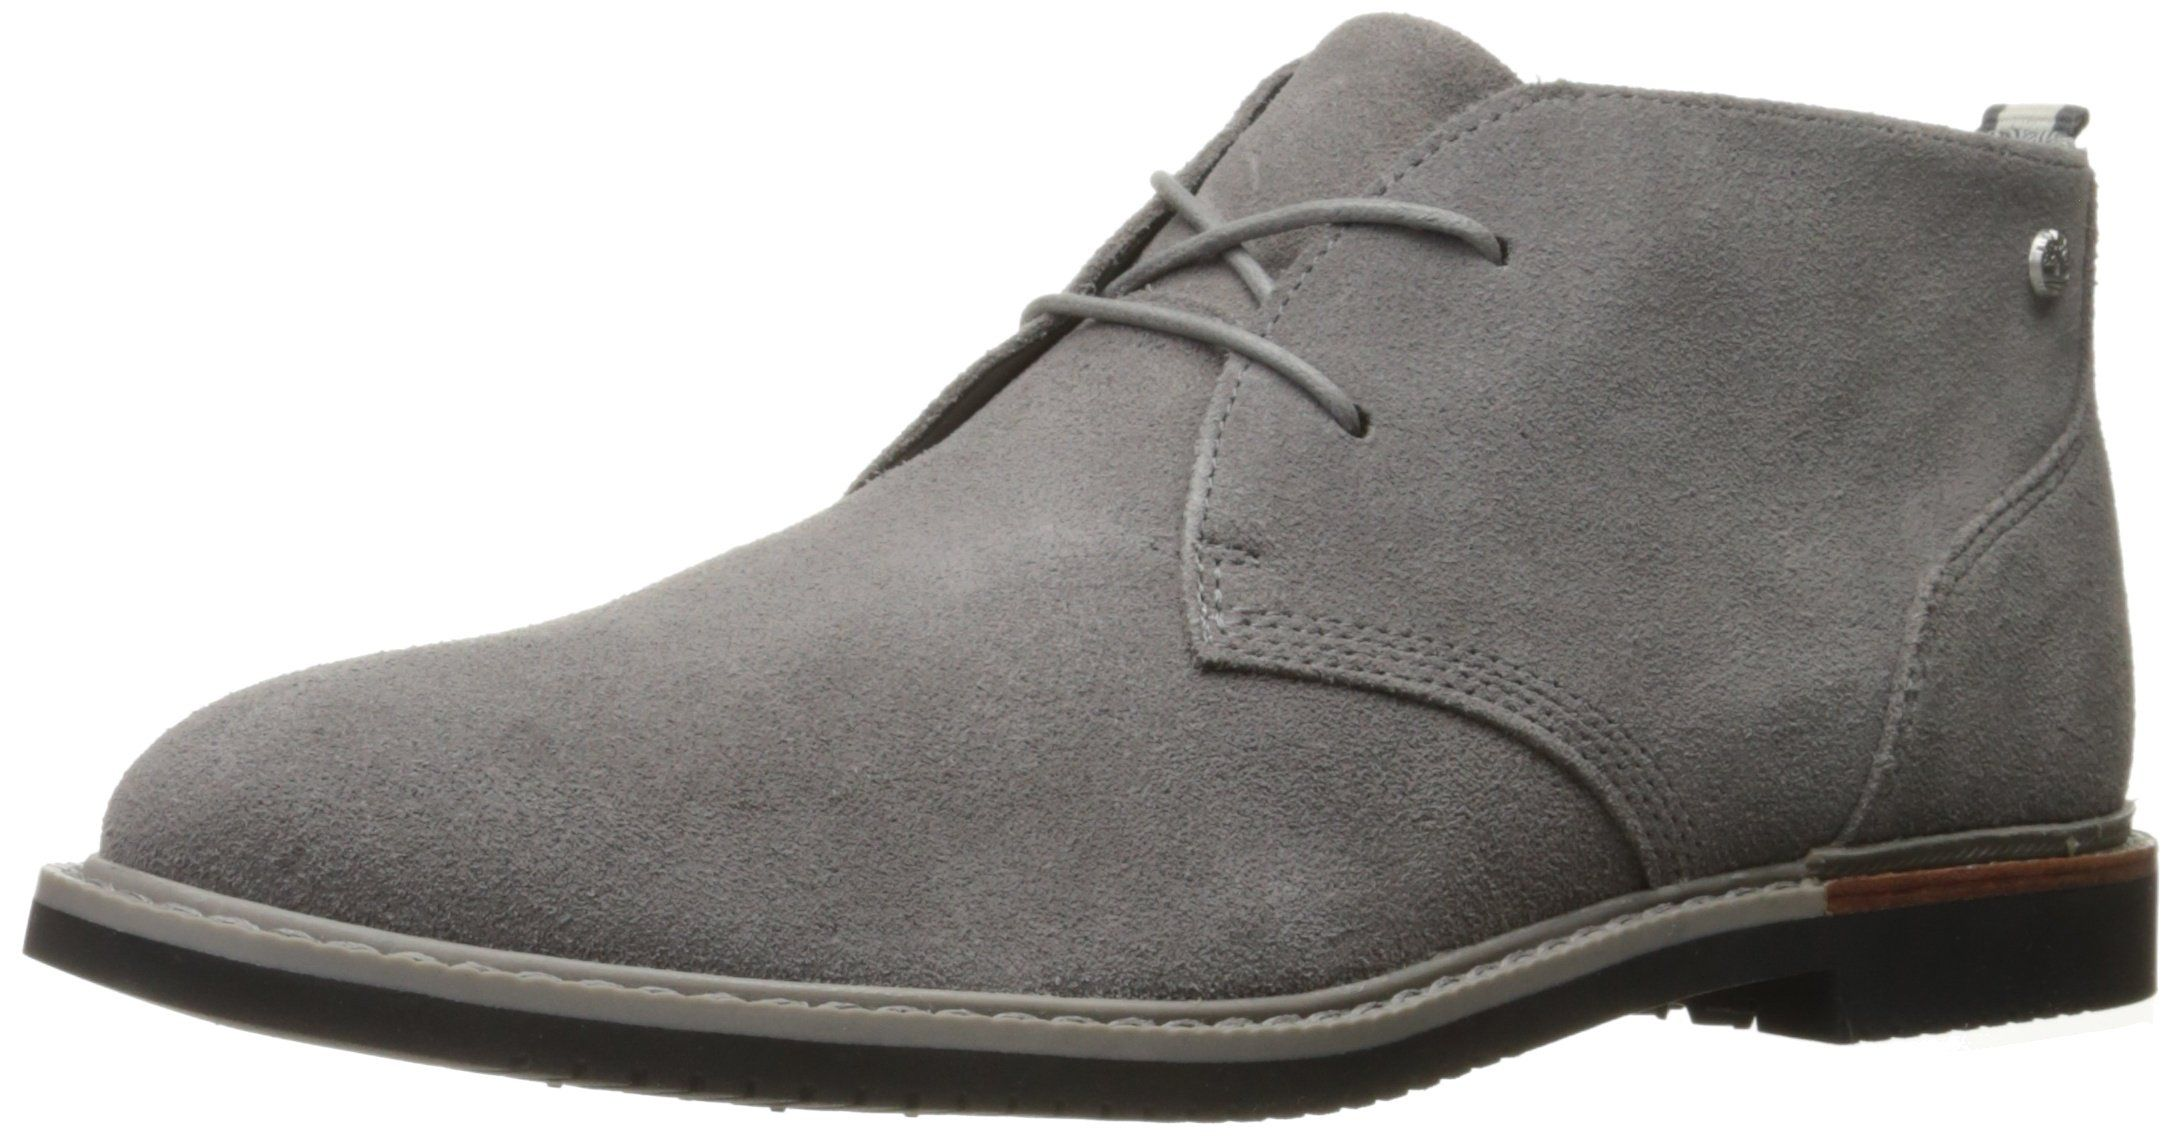 9891b03d442 Timberland Mens Brook Park Chukka Boot Steeple Grey Hammer 11 M US   Check  out this great product. (This is an affiliate link)  TimberlandFashionShoes